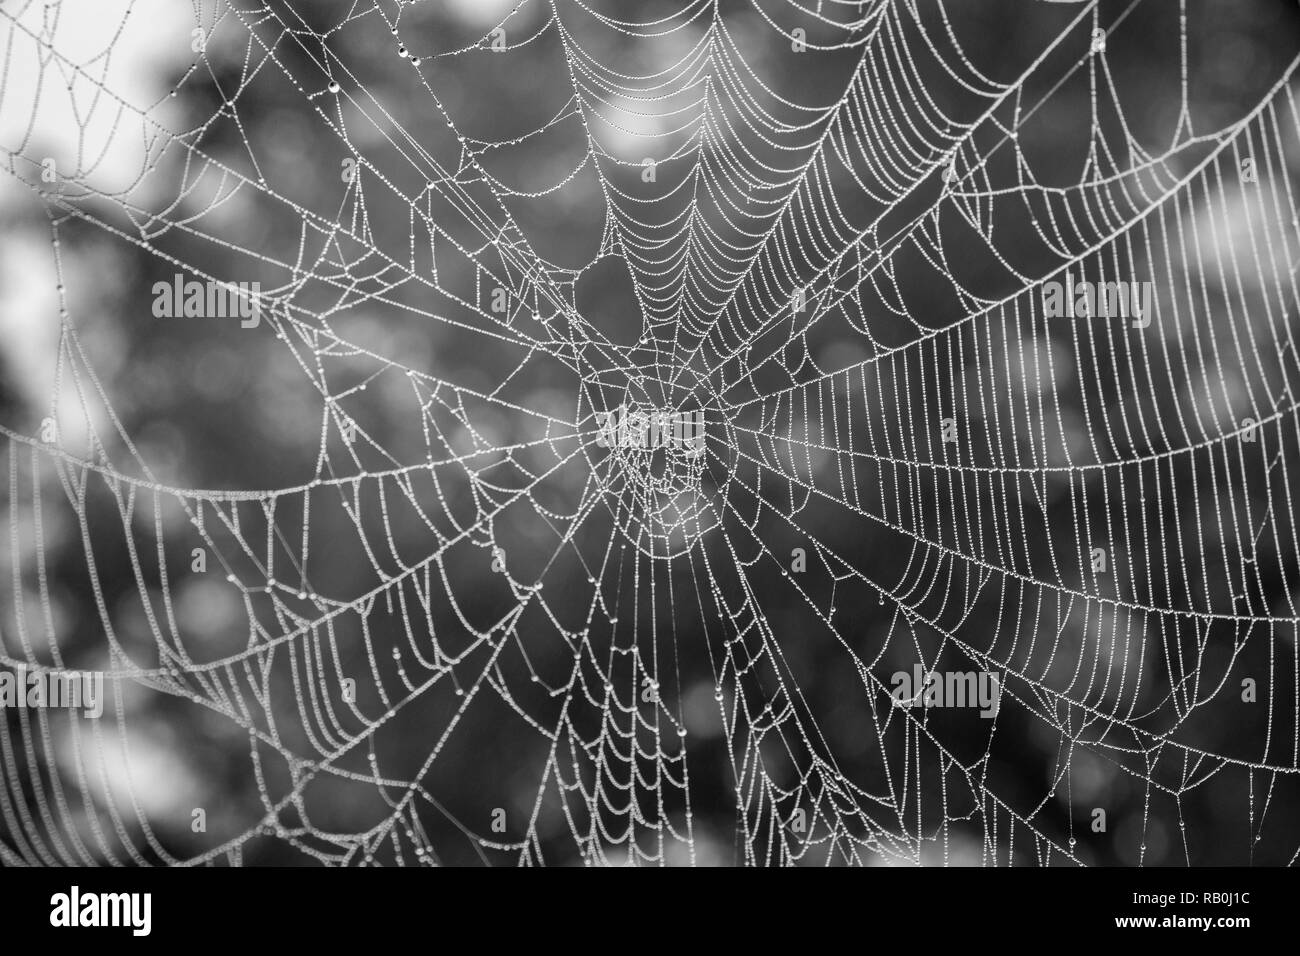 Spider web with fog water drops, image taken in earlier morning - Stock Image